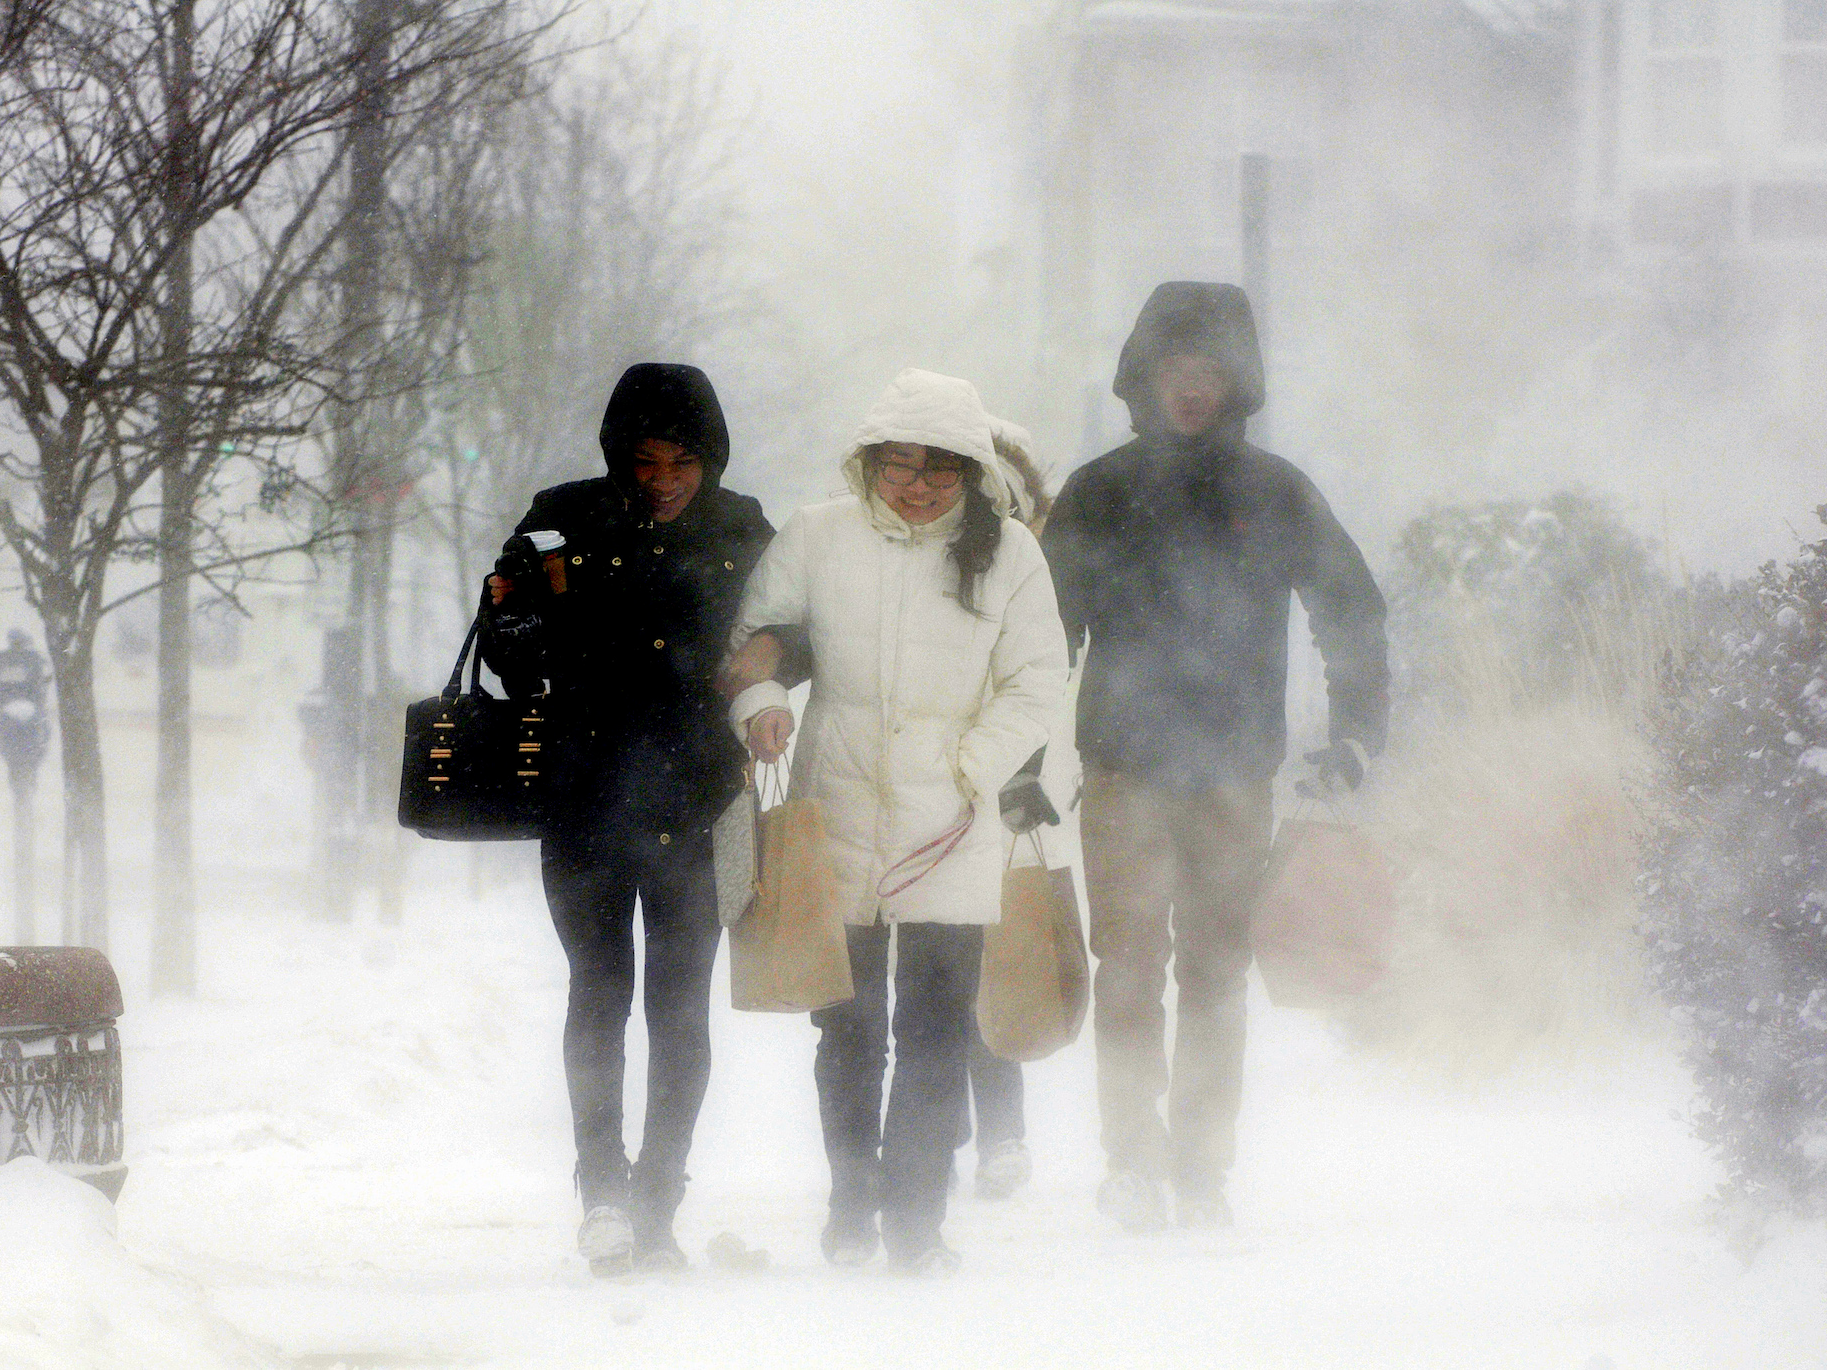 New Yearu0027s Eve snowstorm: cold forecast and potential travel delays -  Business Insider - People In Cold Winter PNG